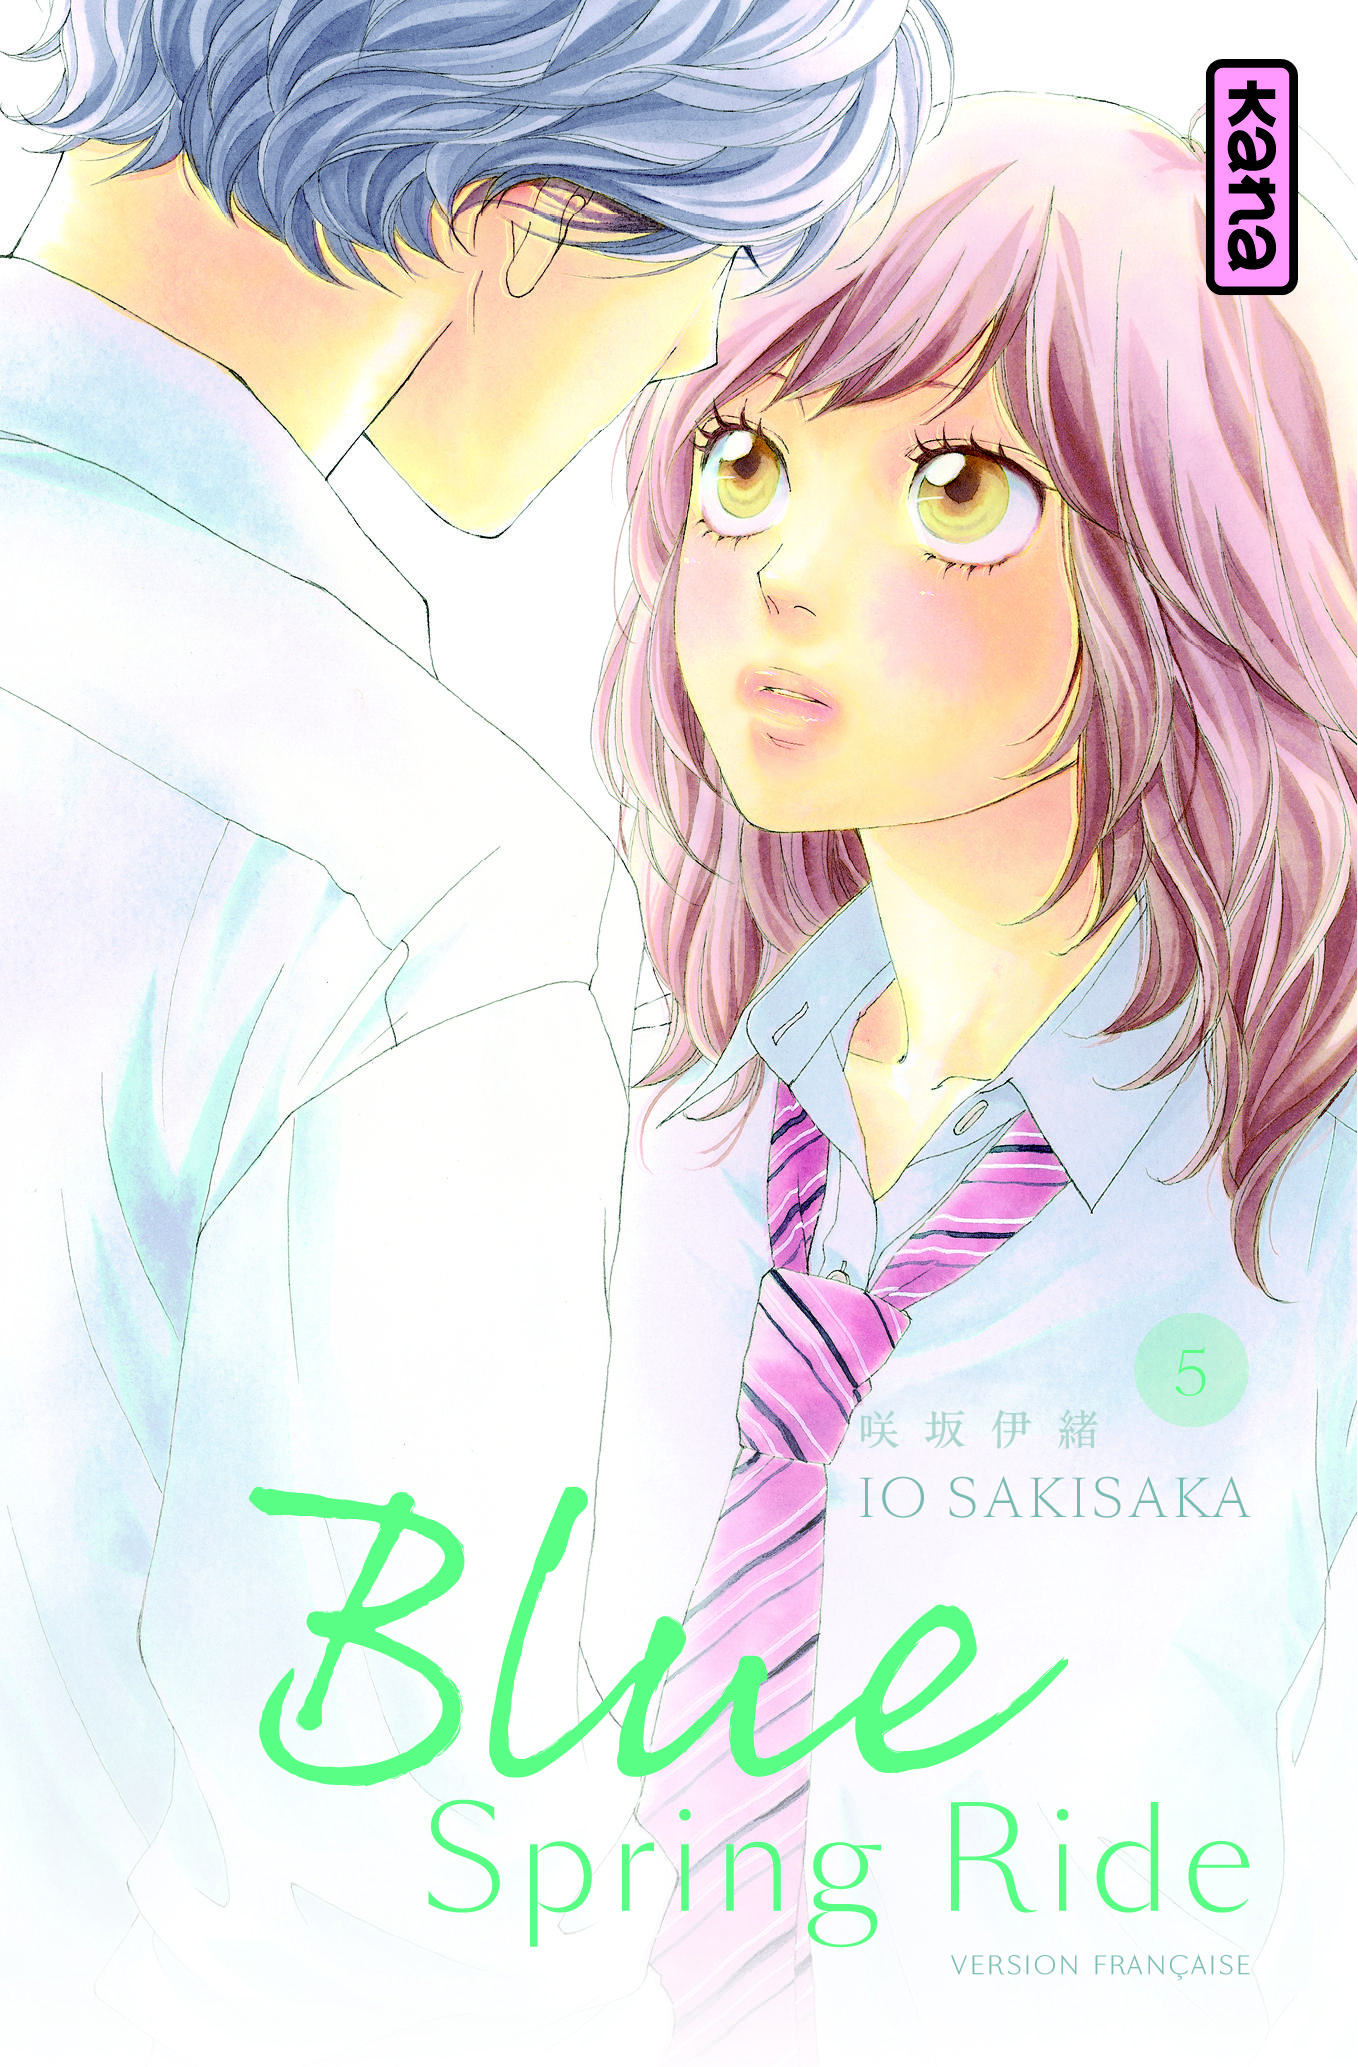 [MANGA/ANIME] Blue Spring Ride (Ao Haru Ride) Blue-spring-ride-manga-volume-5-simple-77941